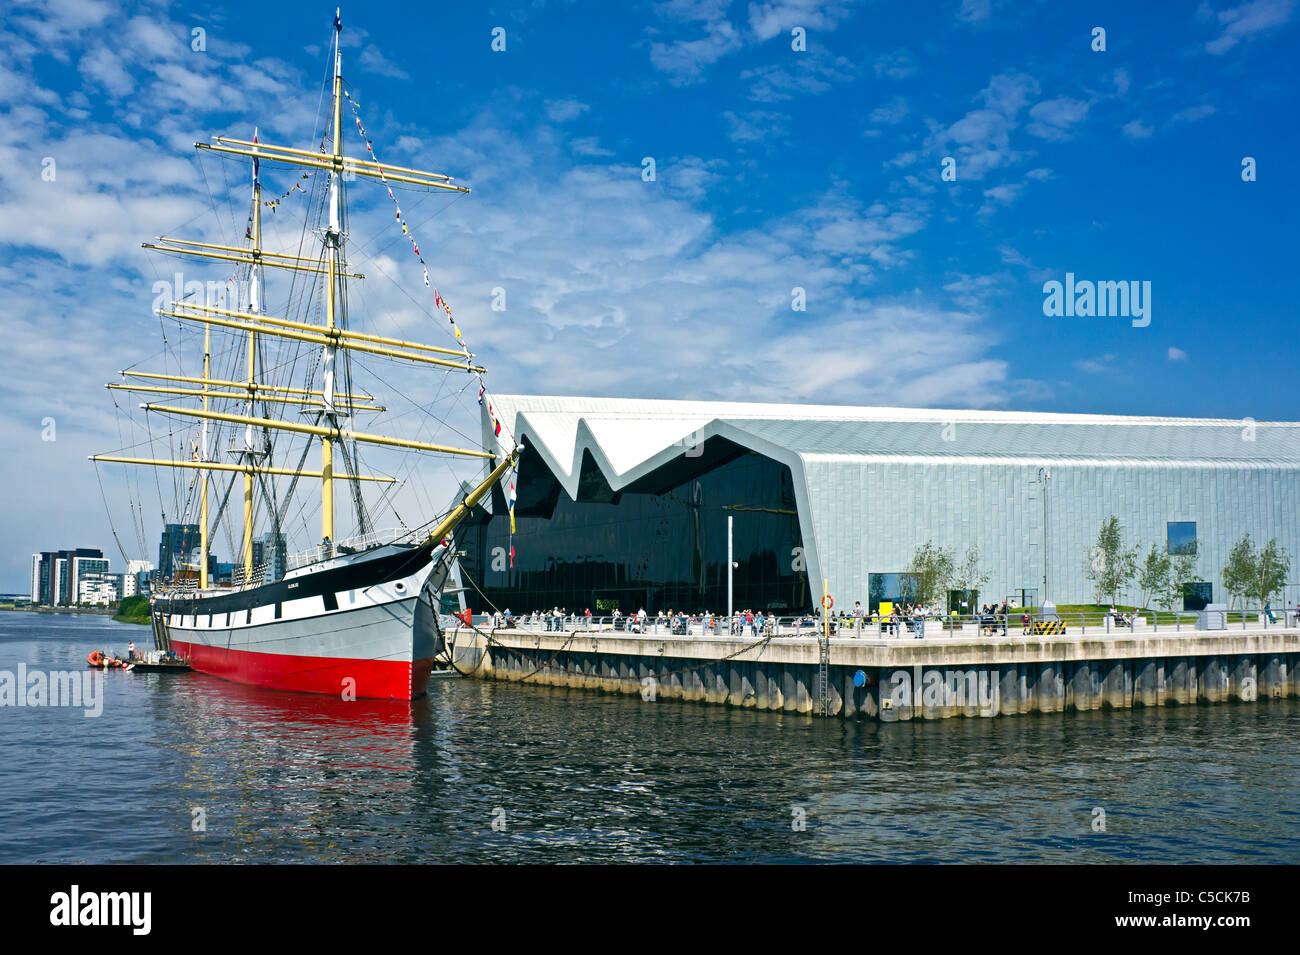 im besitz der clyde maritime trust tall ship glenlee im neu errichteten riverside museum auf dem. Black Bedroom Furniture Sets. Home Design Ideas